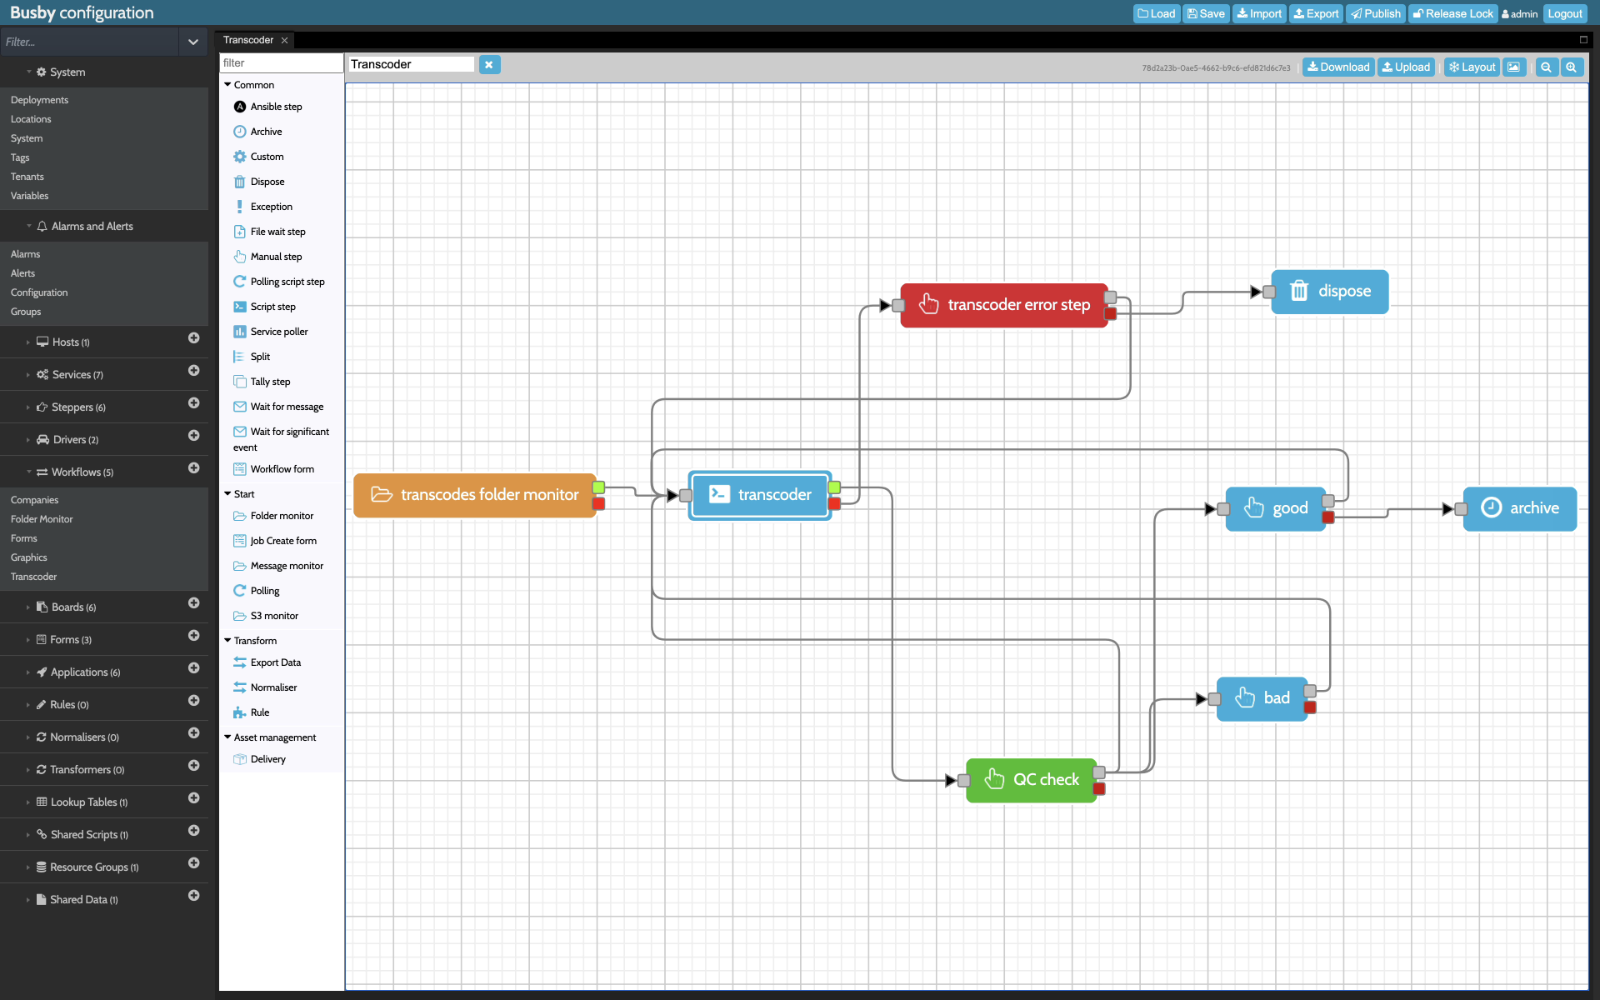 busby_config_workflow_screenshot